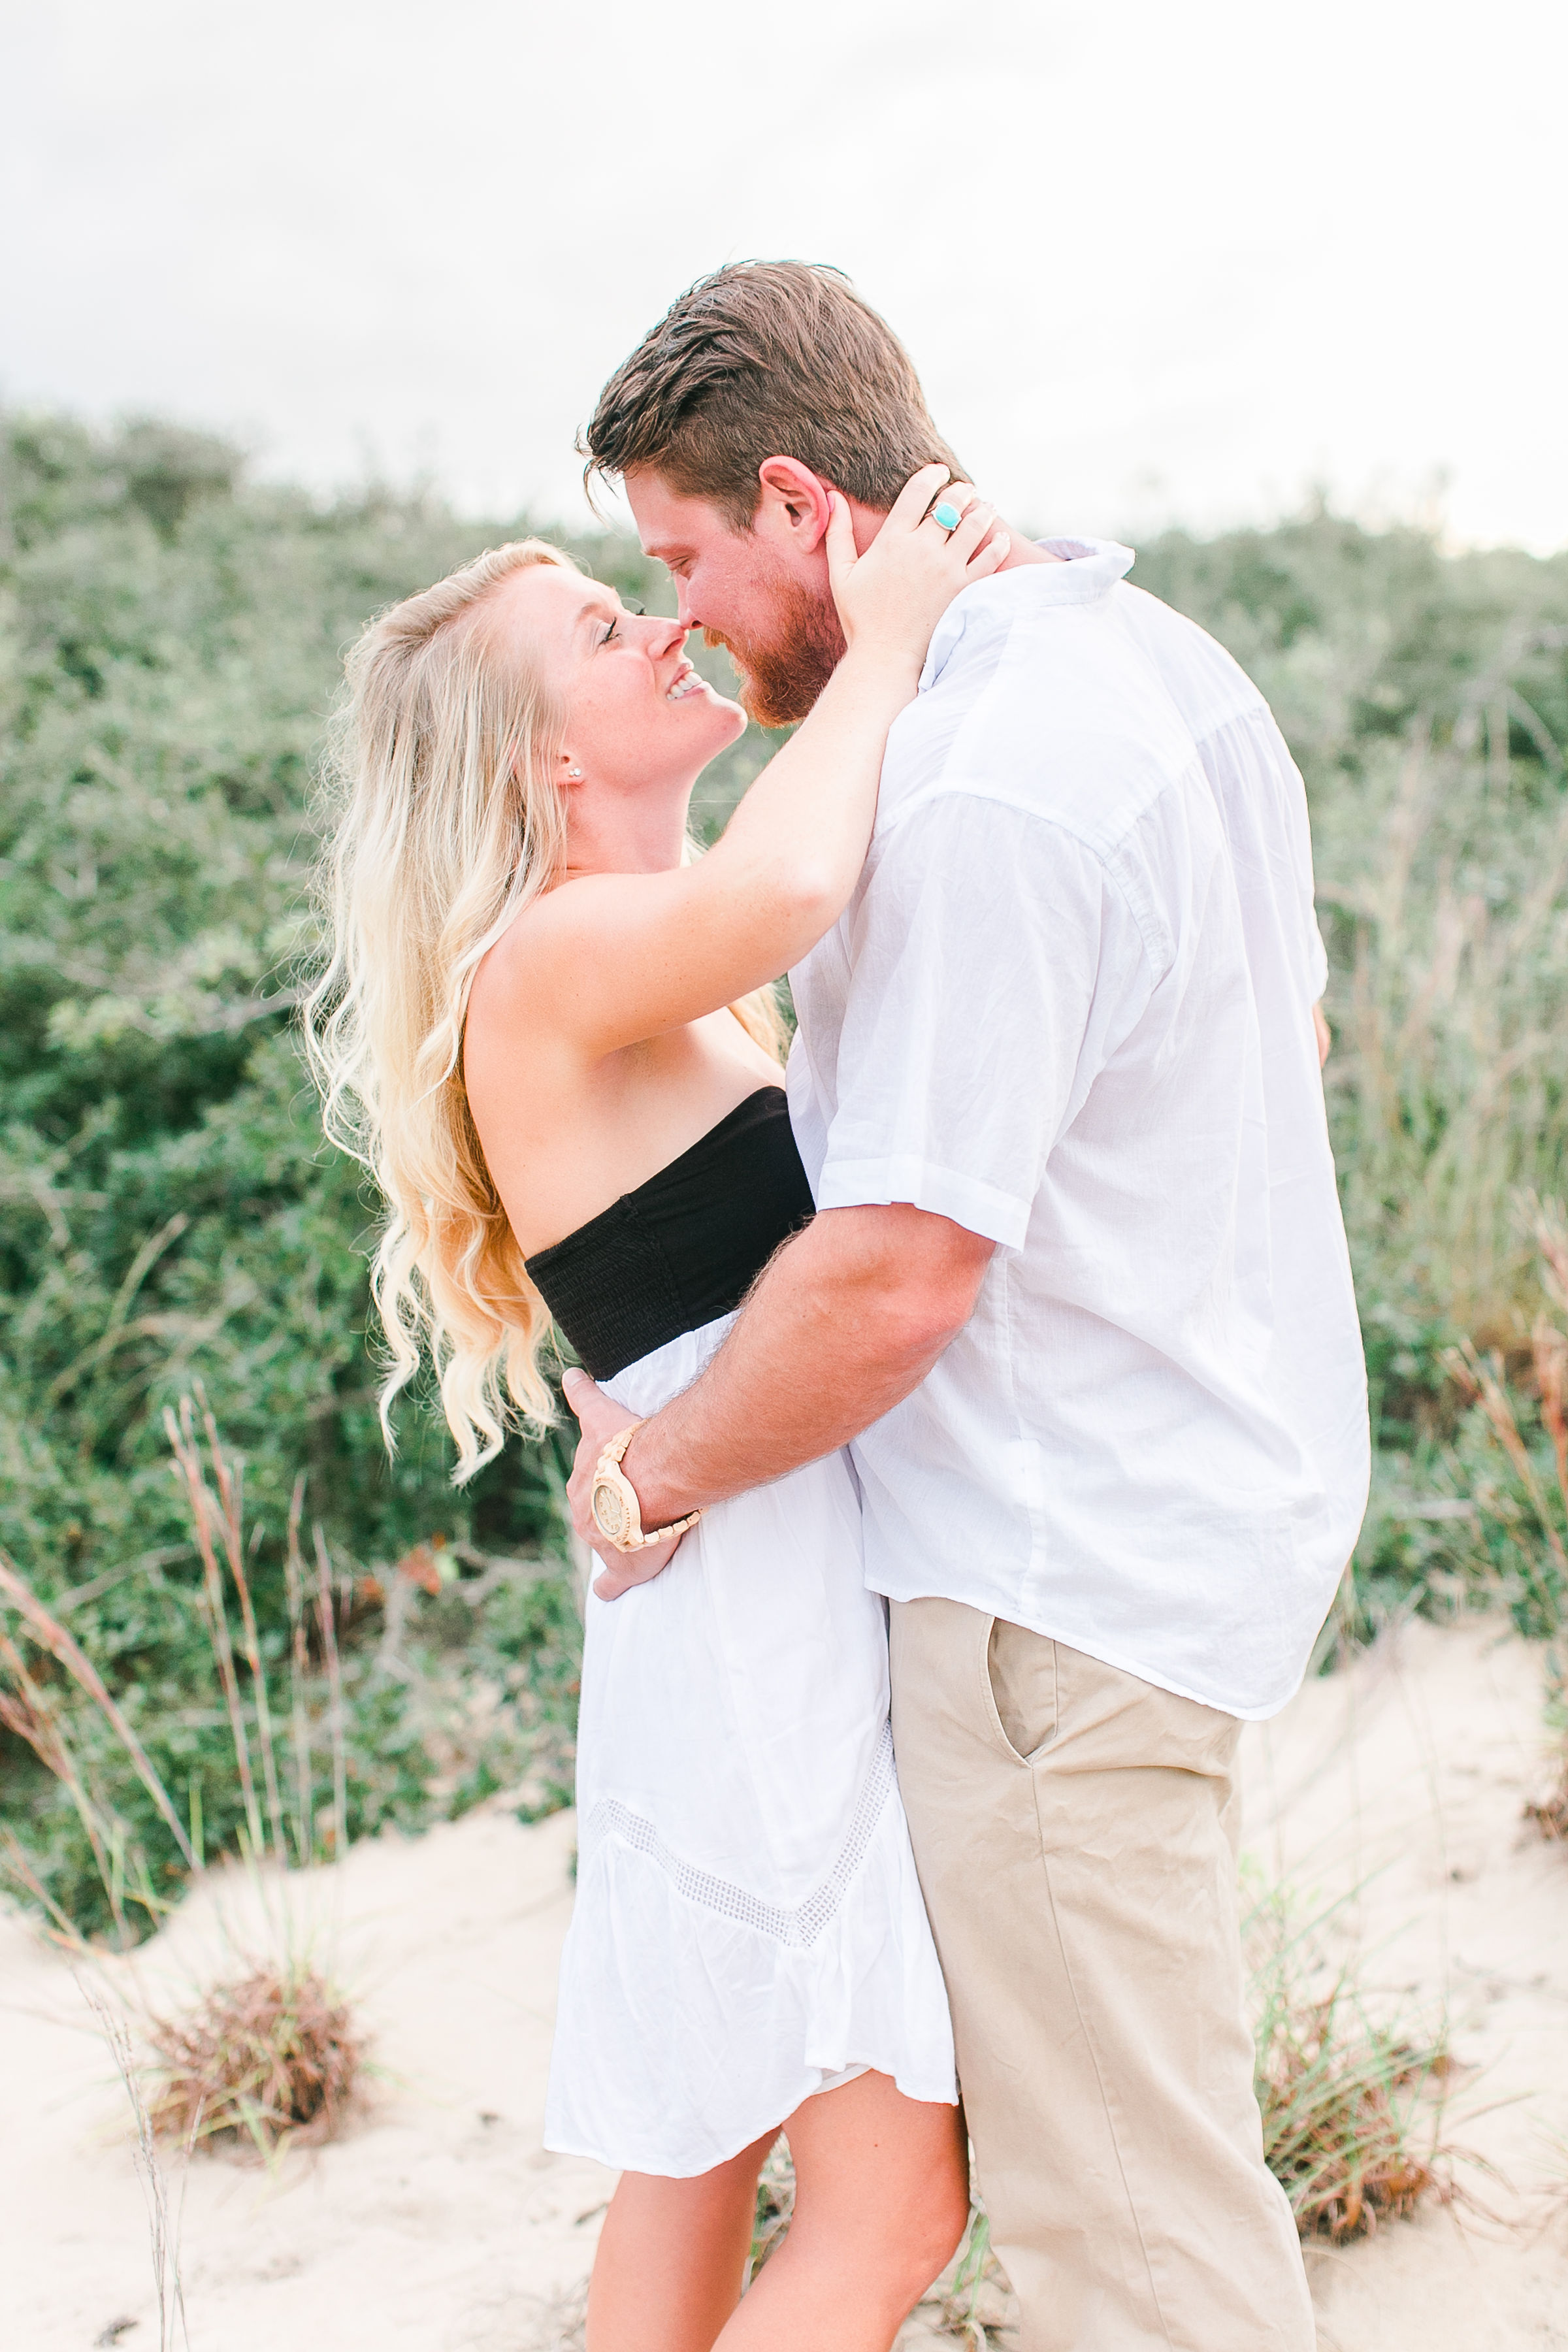 Chelsea&Jordan_Engaged-59.jpg